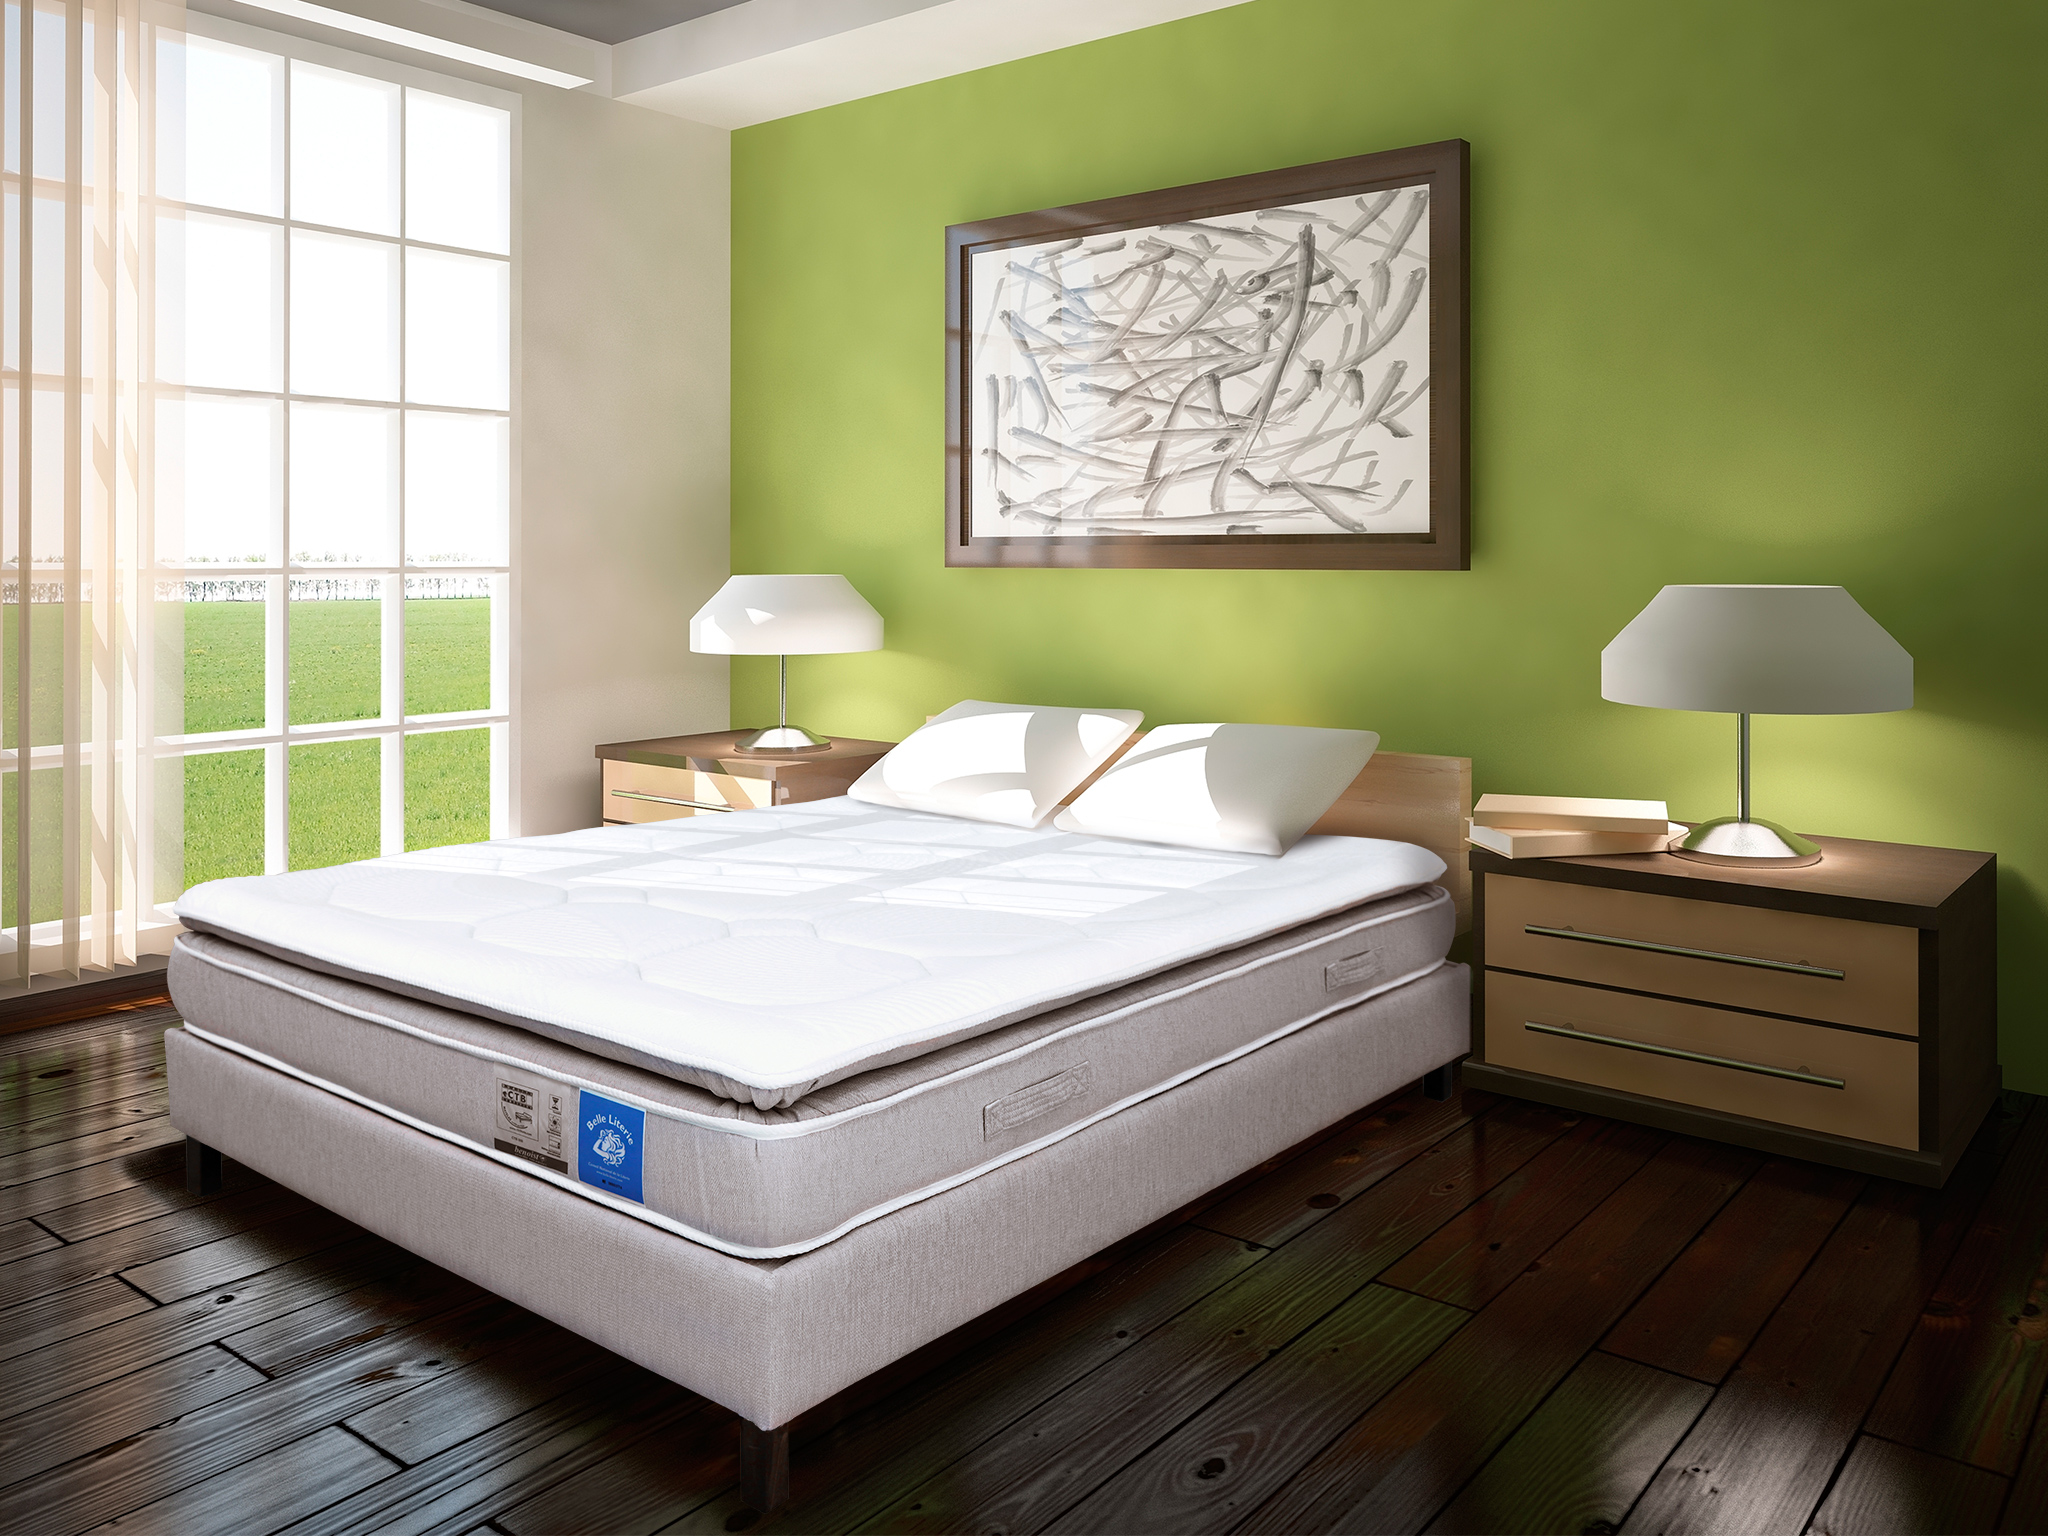 matelas mousse m moire de forme 90x190 avec sur matelas m moire de forme. Black Bedroom Furniture Sets. Home Design Ideas